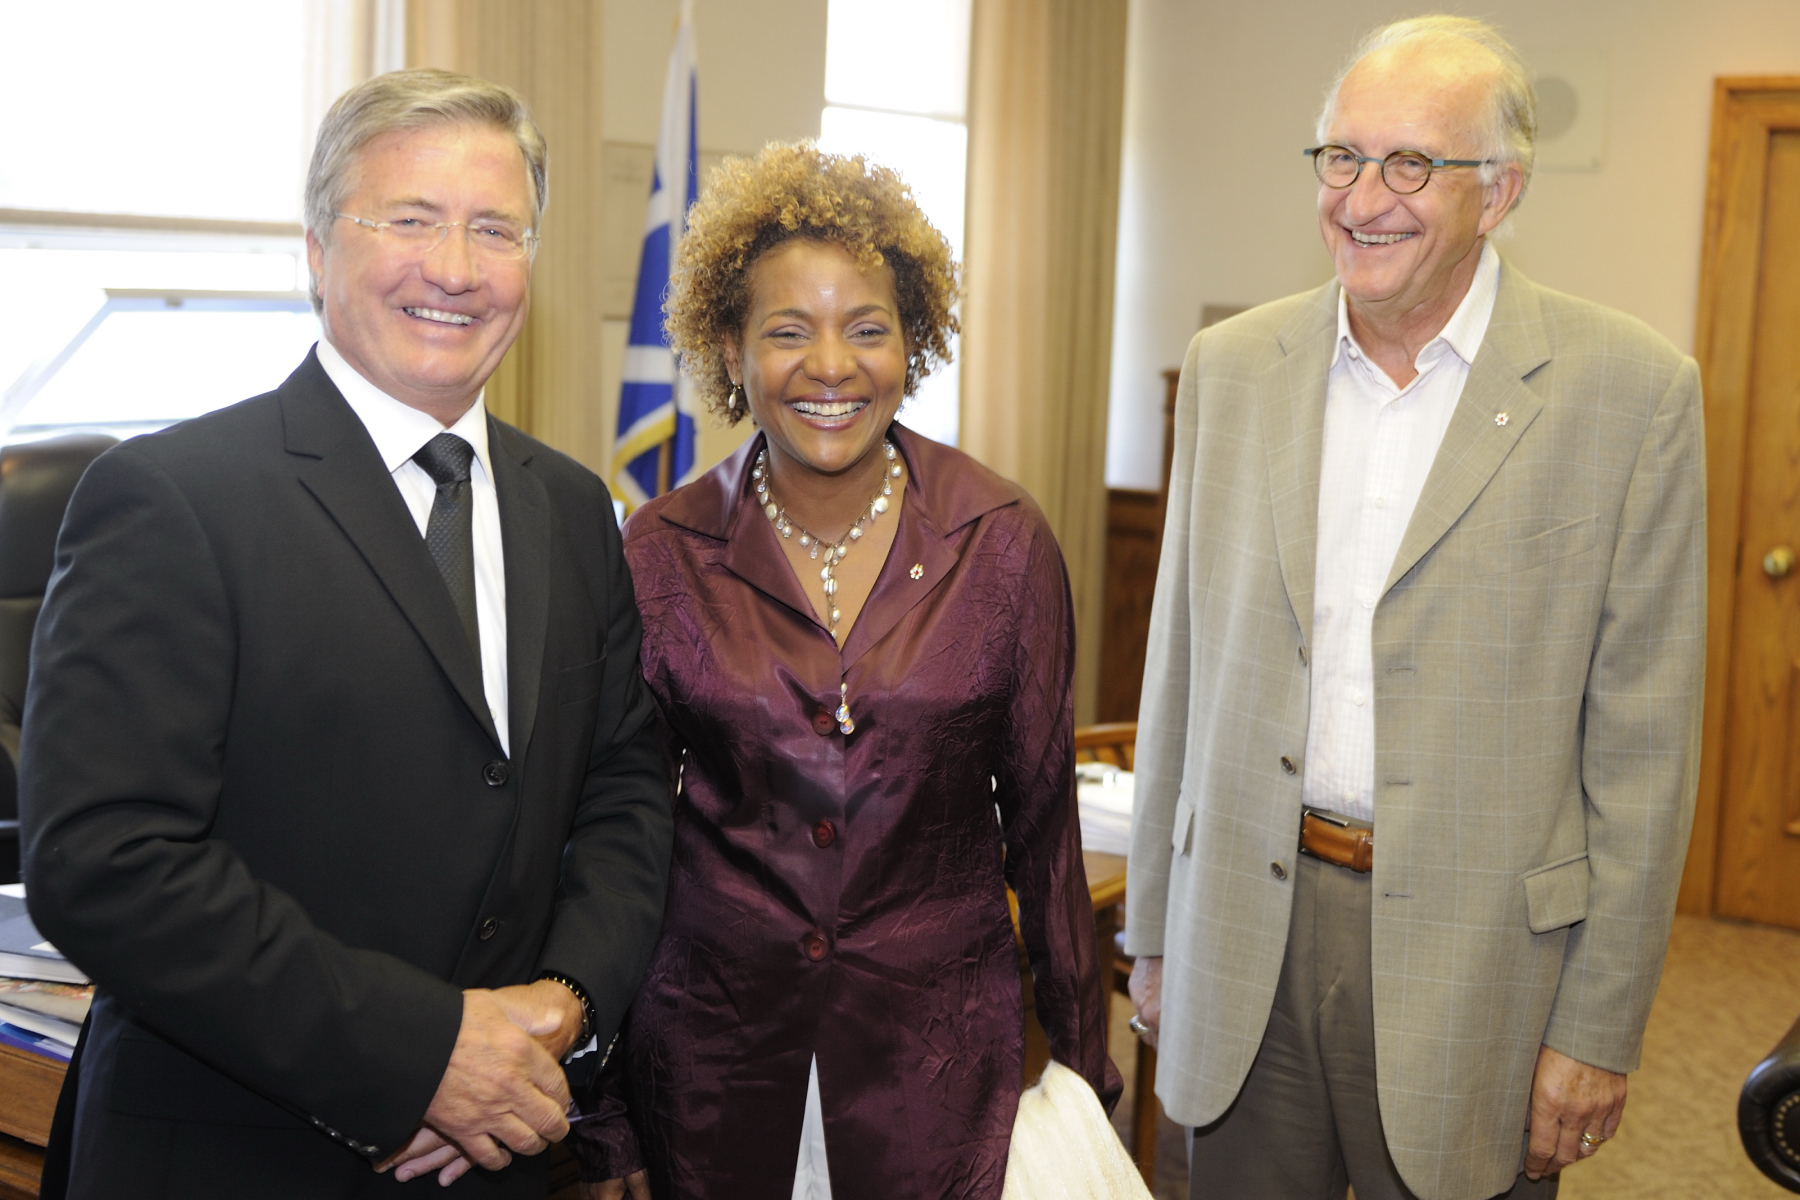 Their Excellencies the Right Honourable Michaëlle Jean, Governor General of Canada, and Mr. Jean-Daniel Lafond, undertook a regional visit to Newfoundland and Labrador that took place form August 21 to 17, 2010.